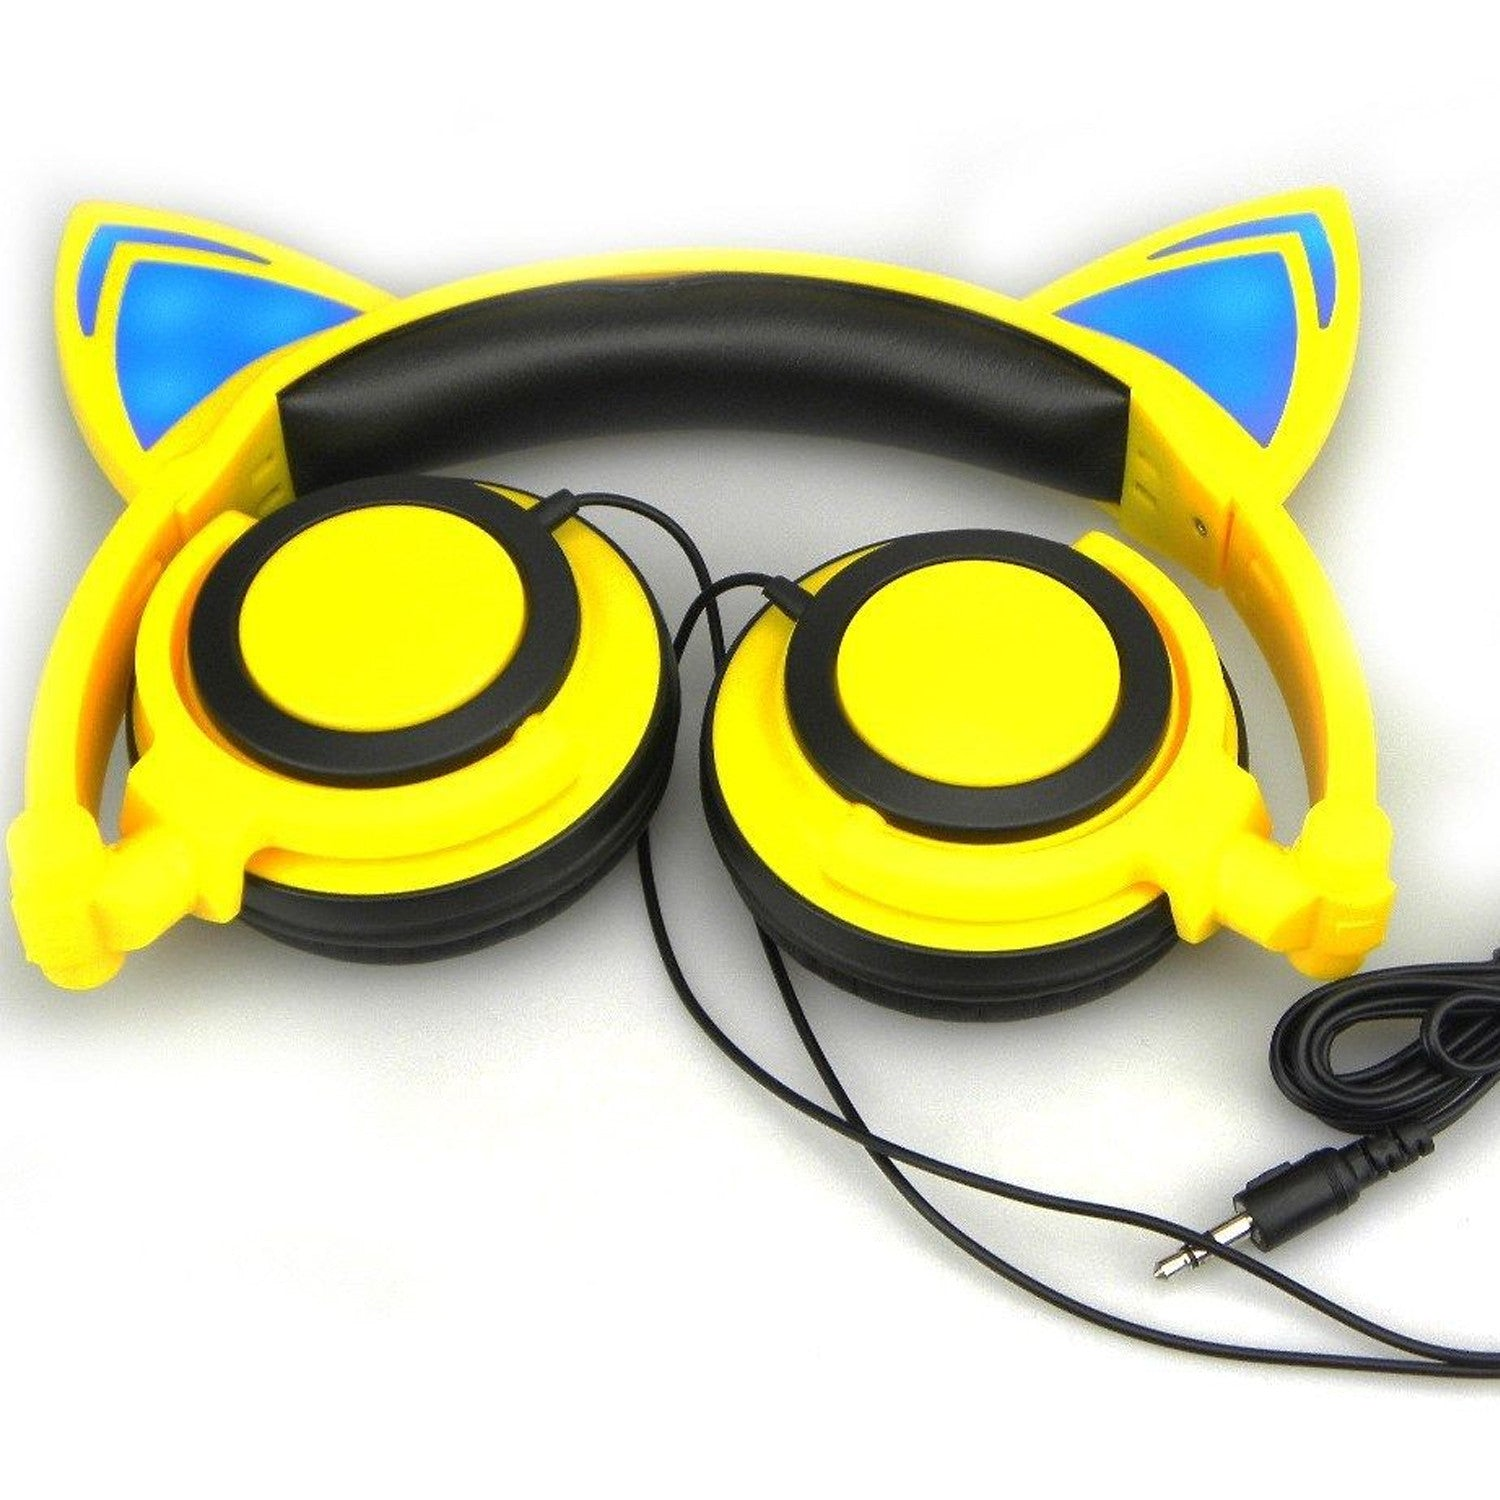 Cat ear headphones with LED light For Laptop, Computer, Mobiles.